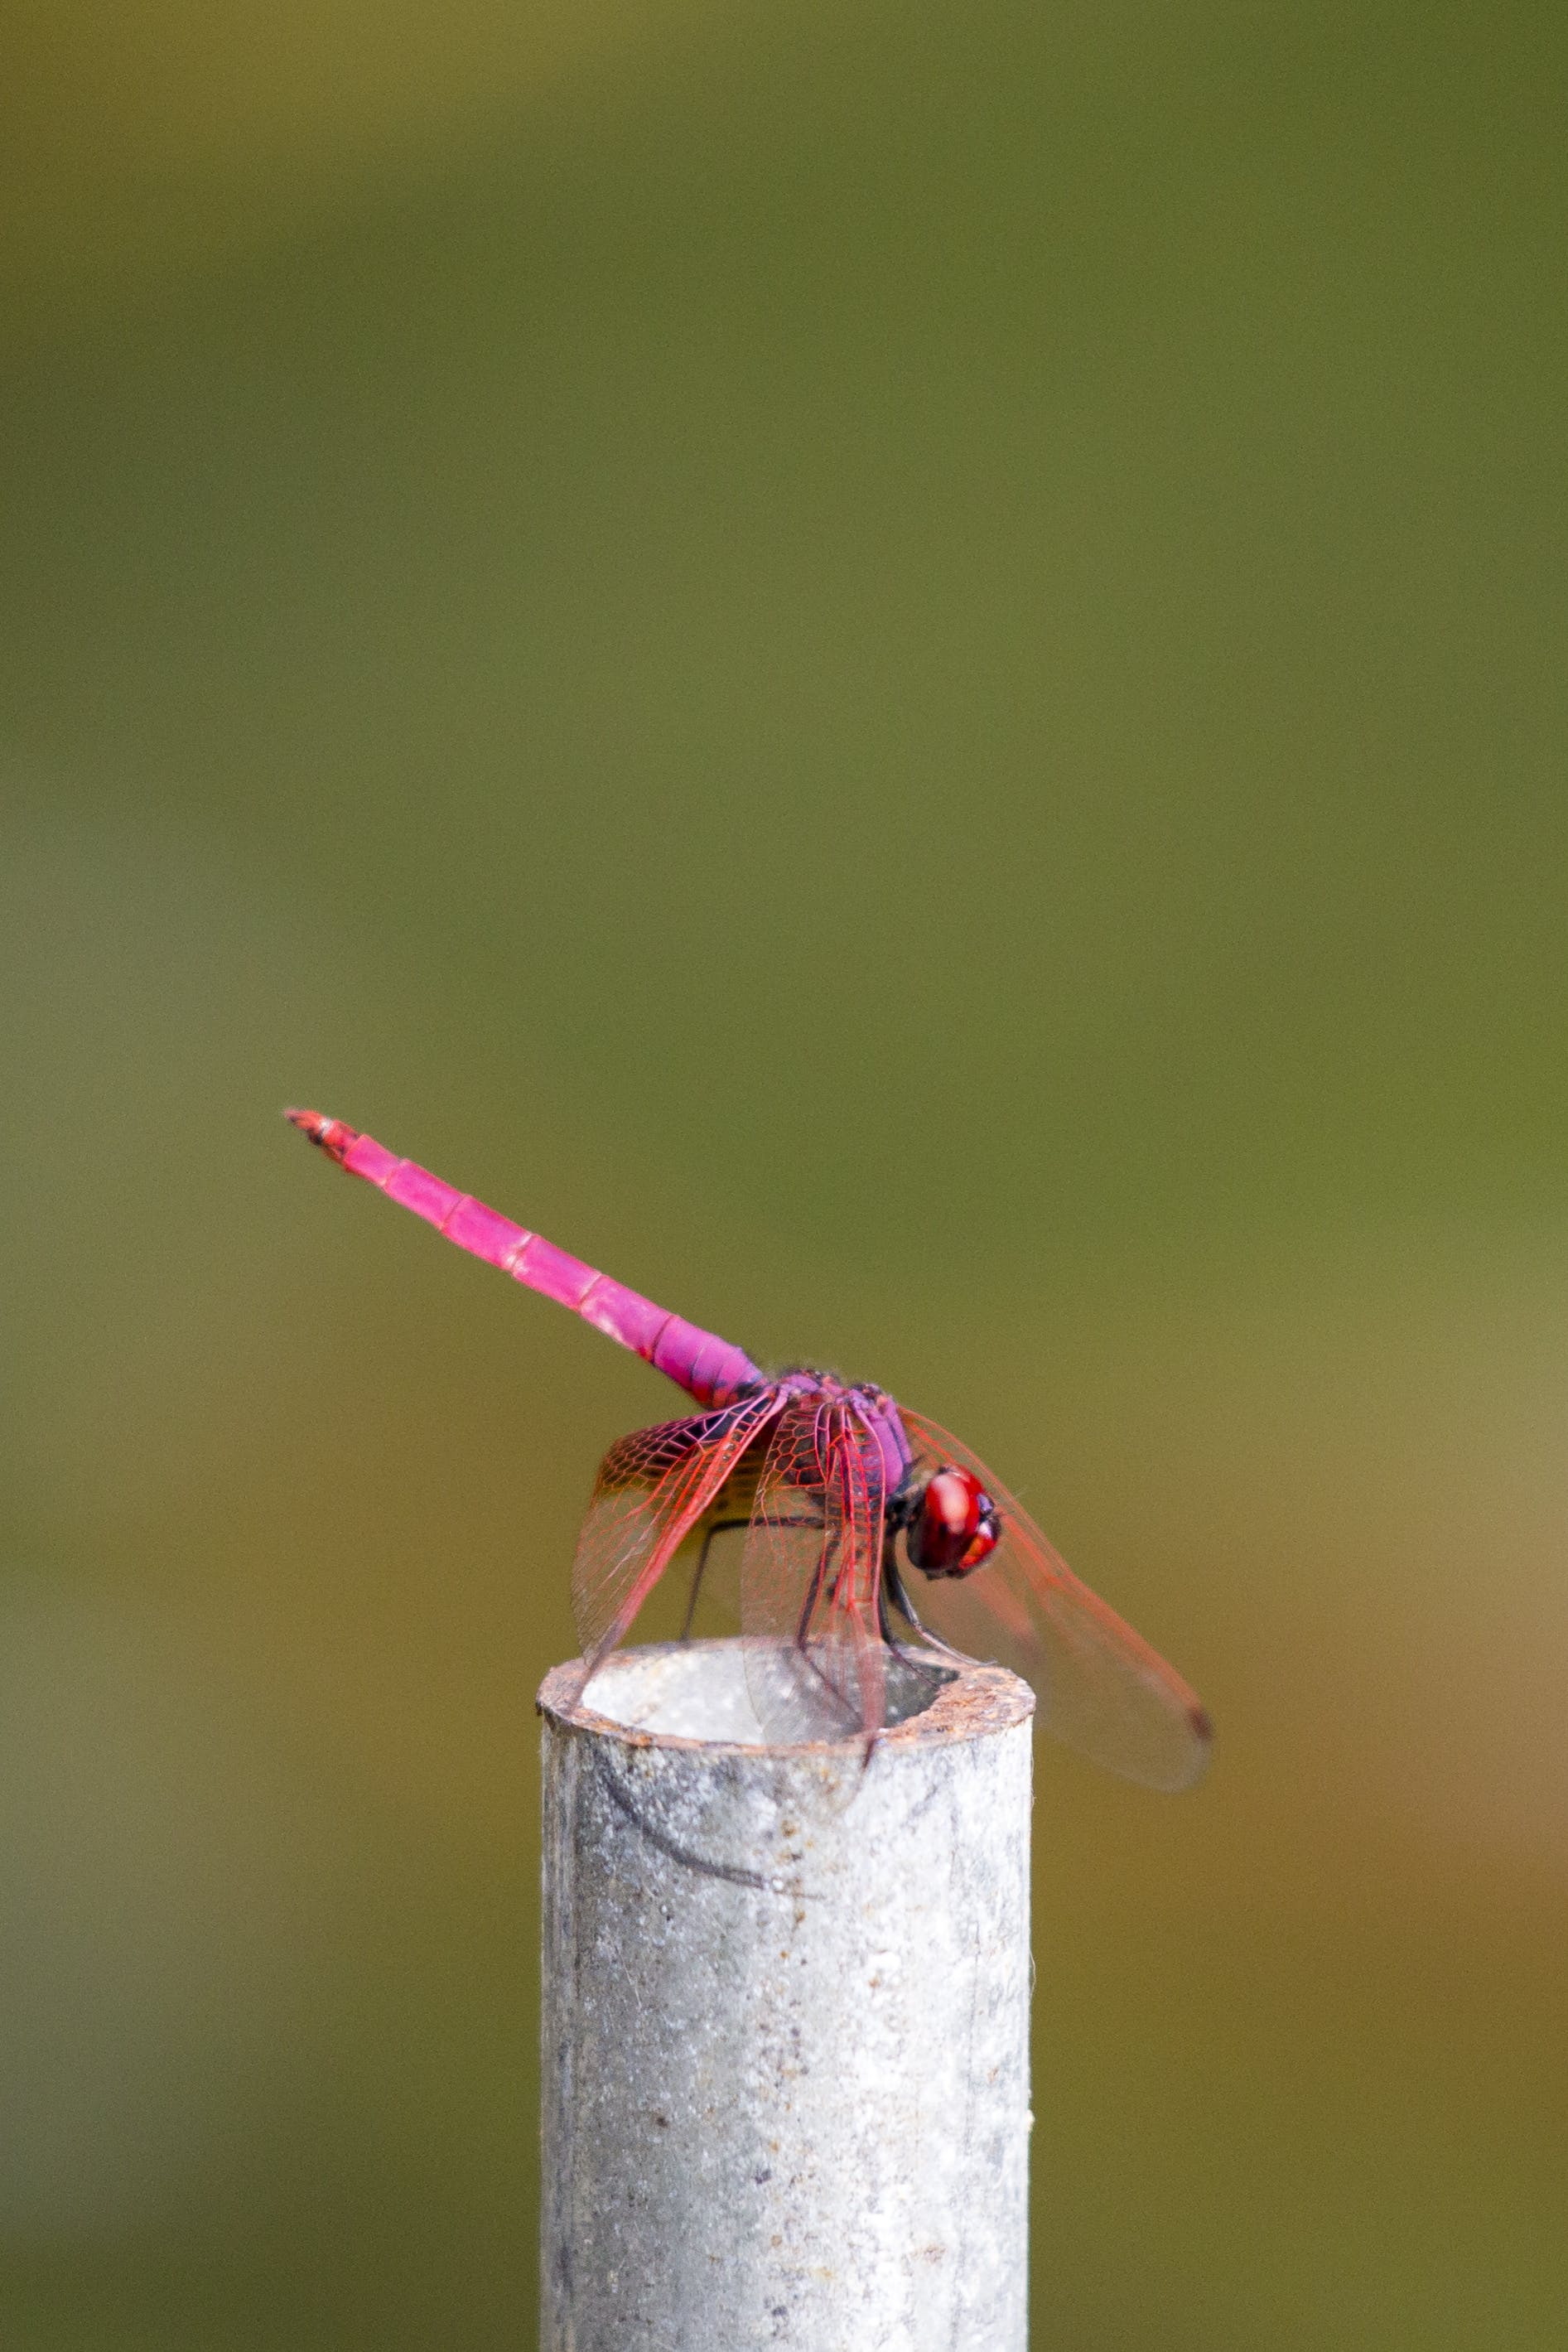 Selective Focus Photography Of Pink Dragonfly Perched